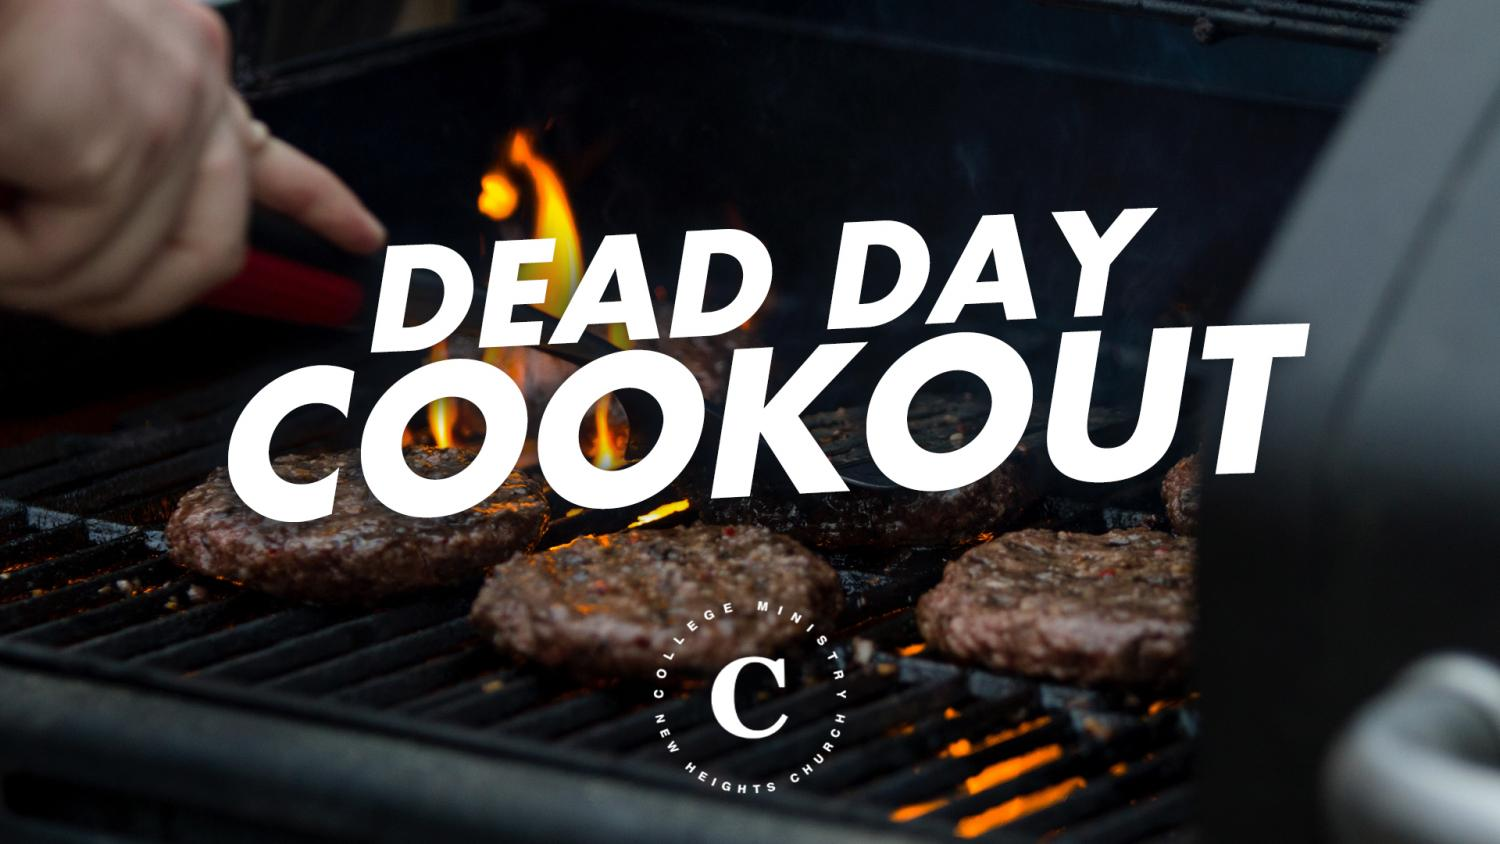 Dead Day Cookout